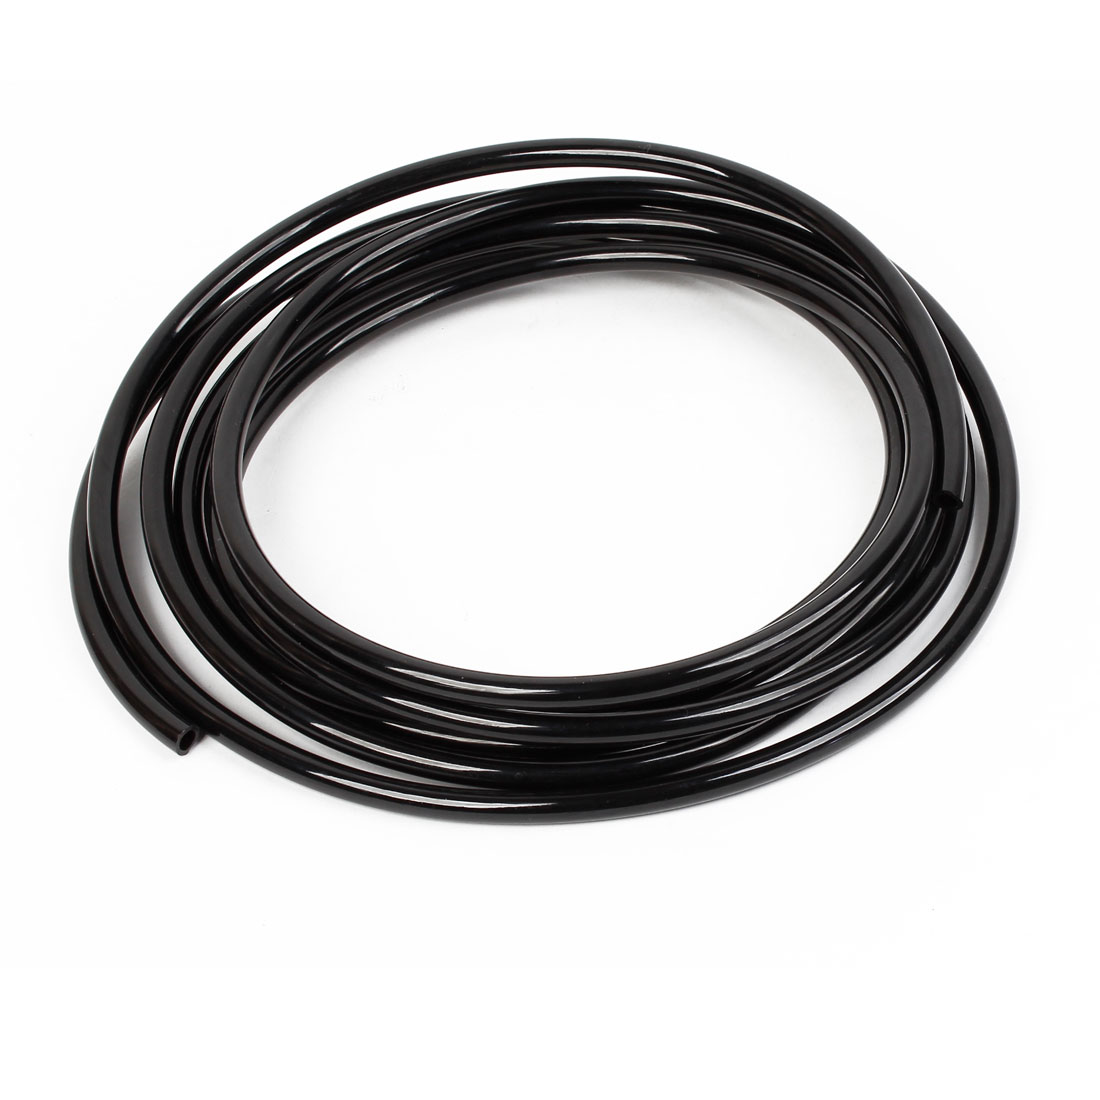 5 Meter 16.4Ft 10 x 6.5mm Pneumatic Air PU Hose Pipe Tube Black